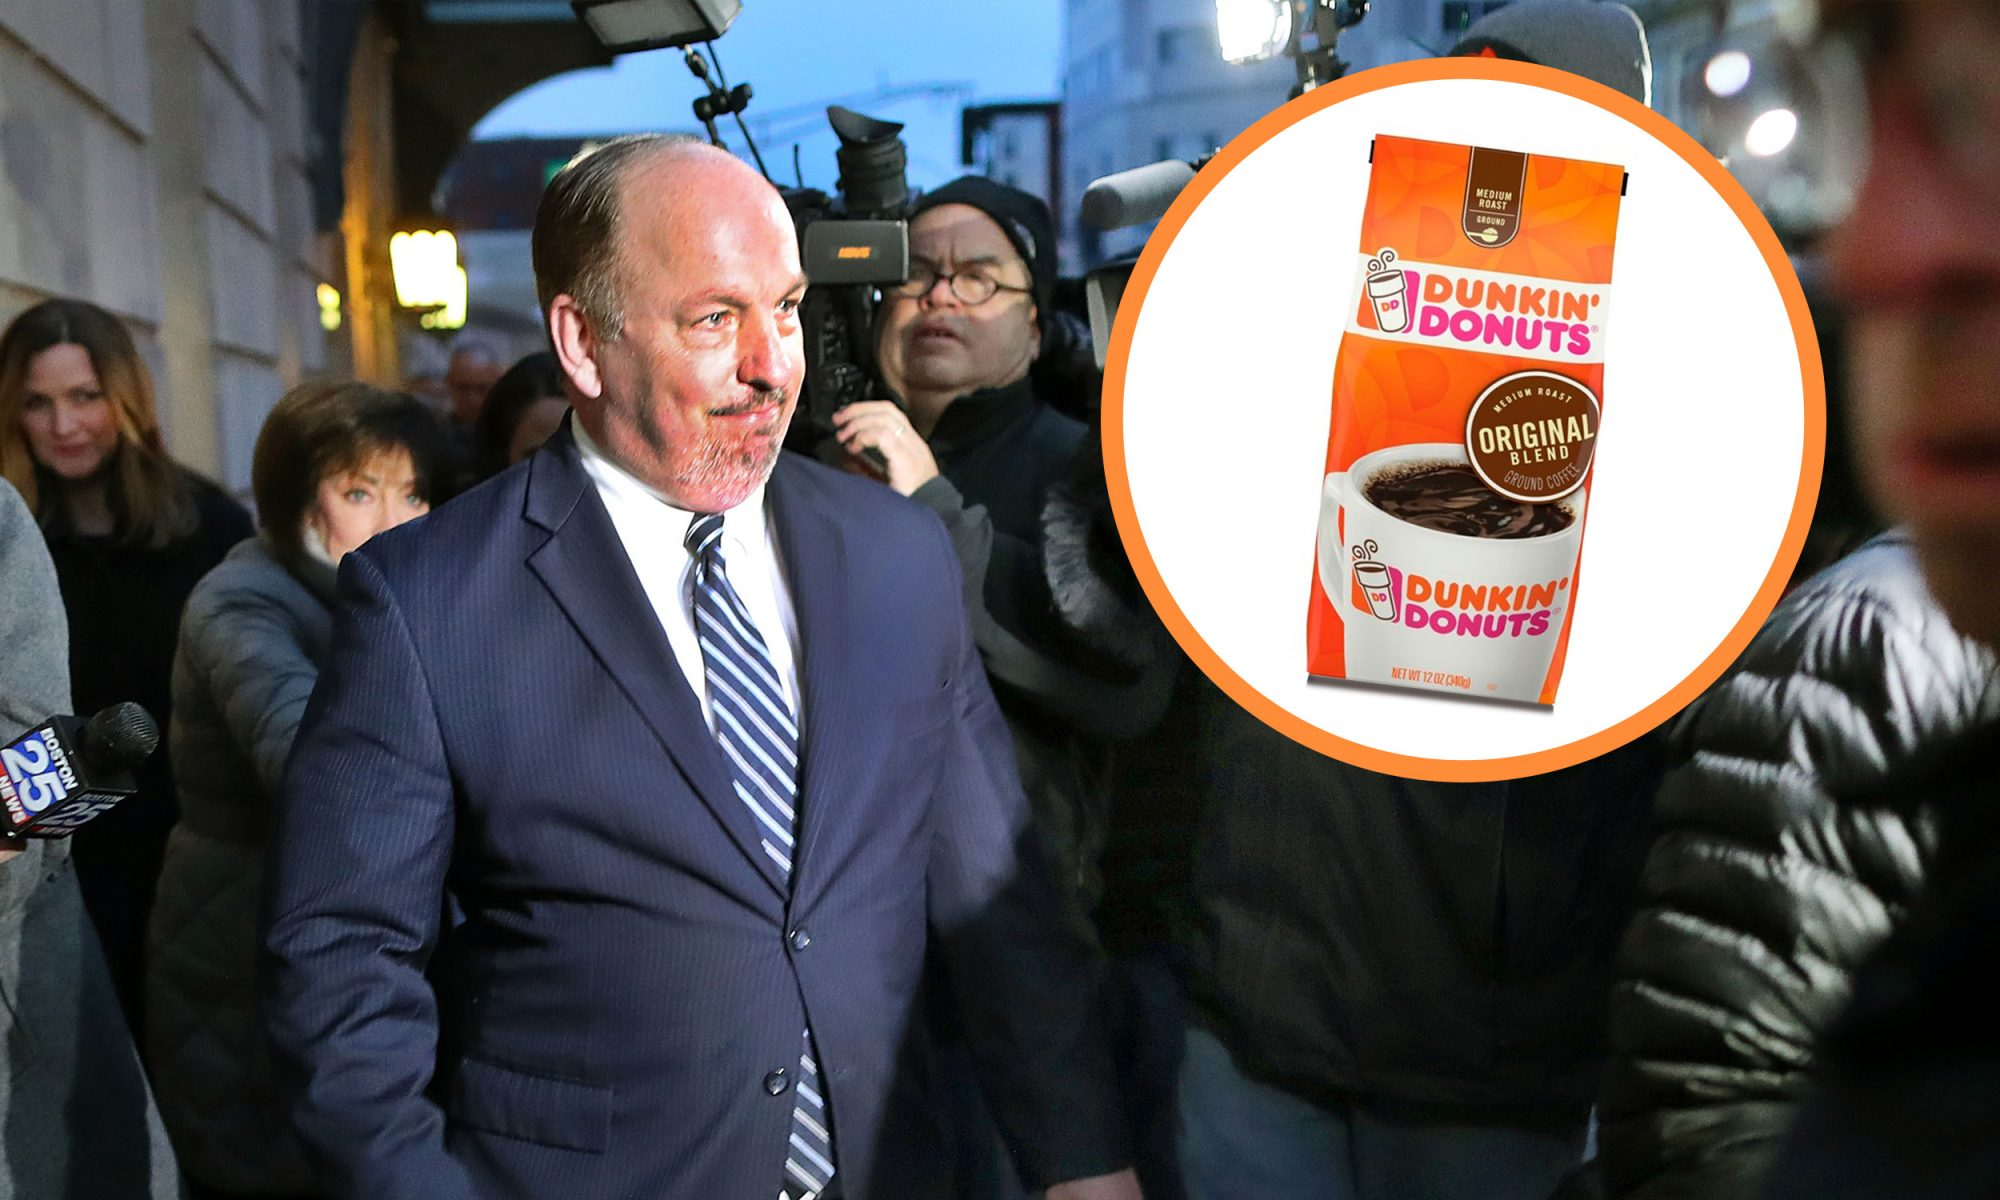 EC: This State Senator Was Allegedly Bribed With Hundreds of Pounds of Dunkin' Donuts Coffee